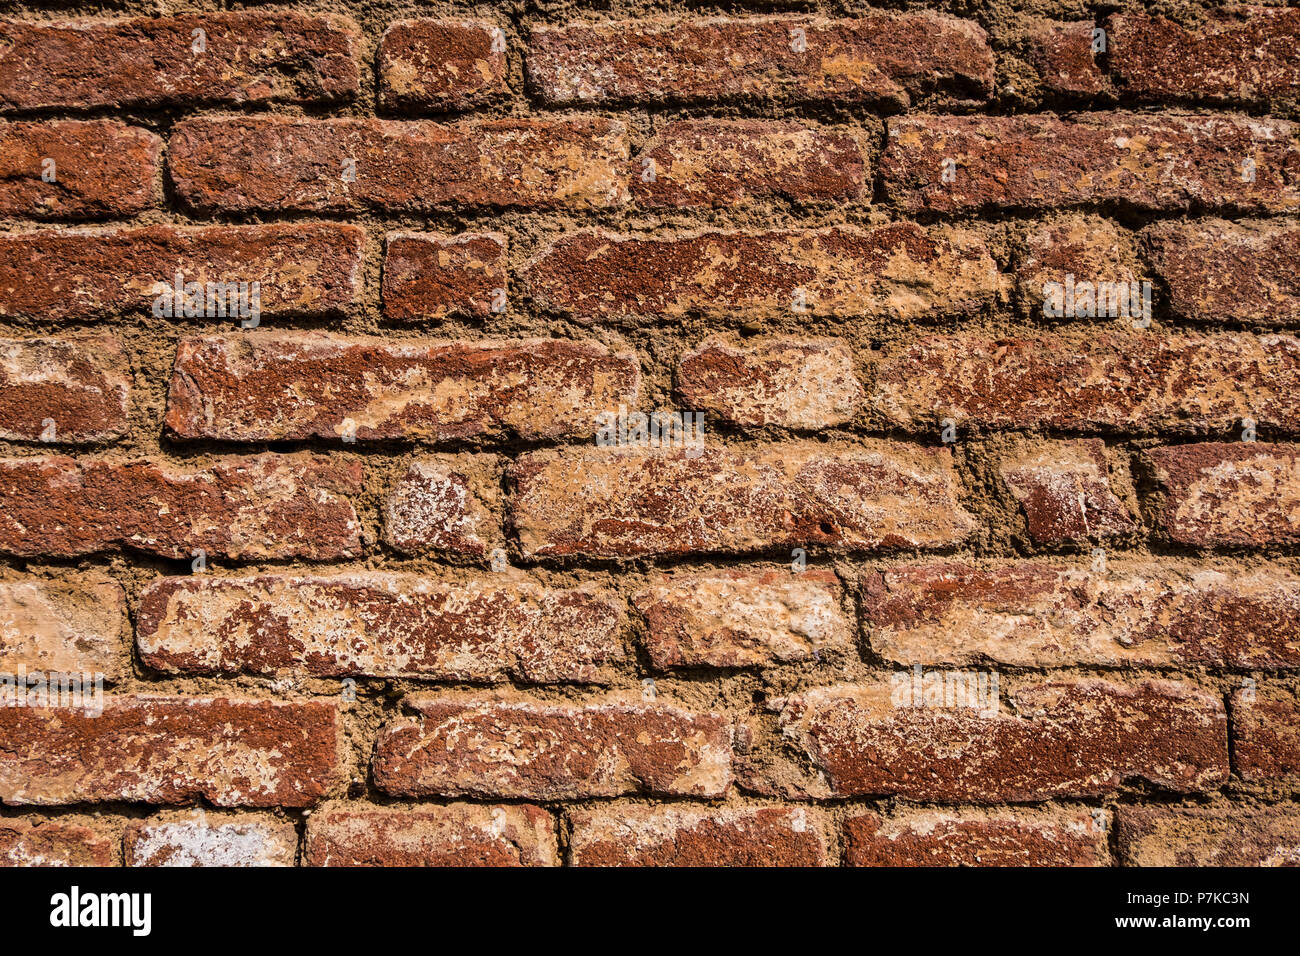 Beautiful Wallpaper Background Of A Worn Old Red Brick Wall No